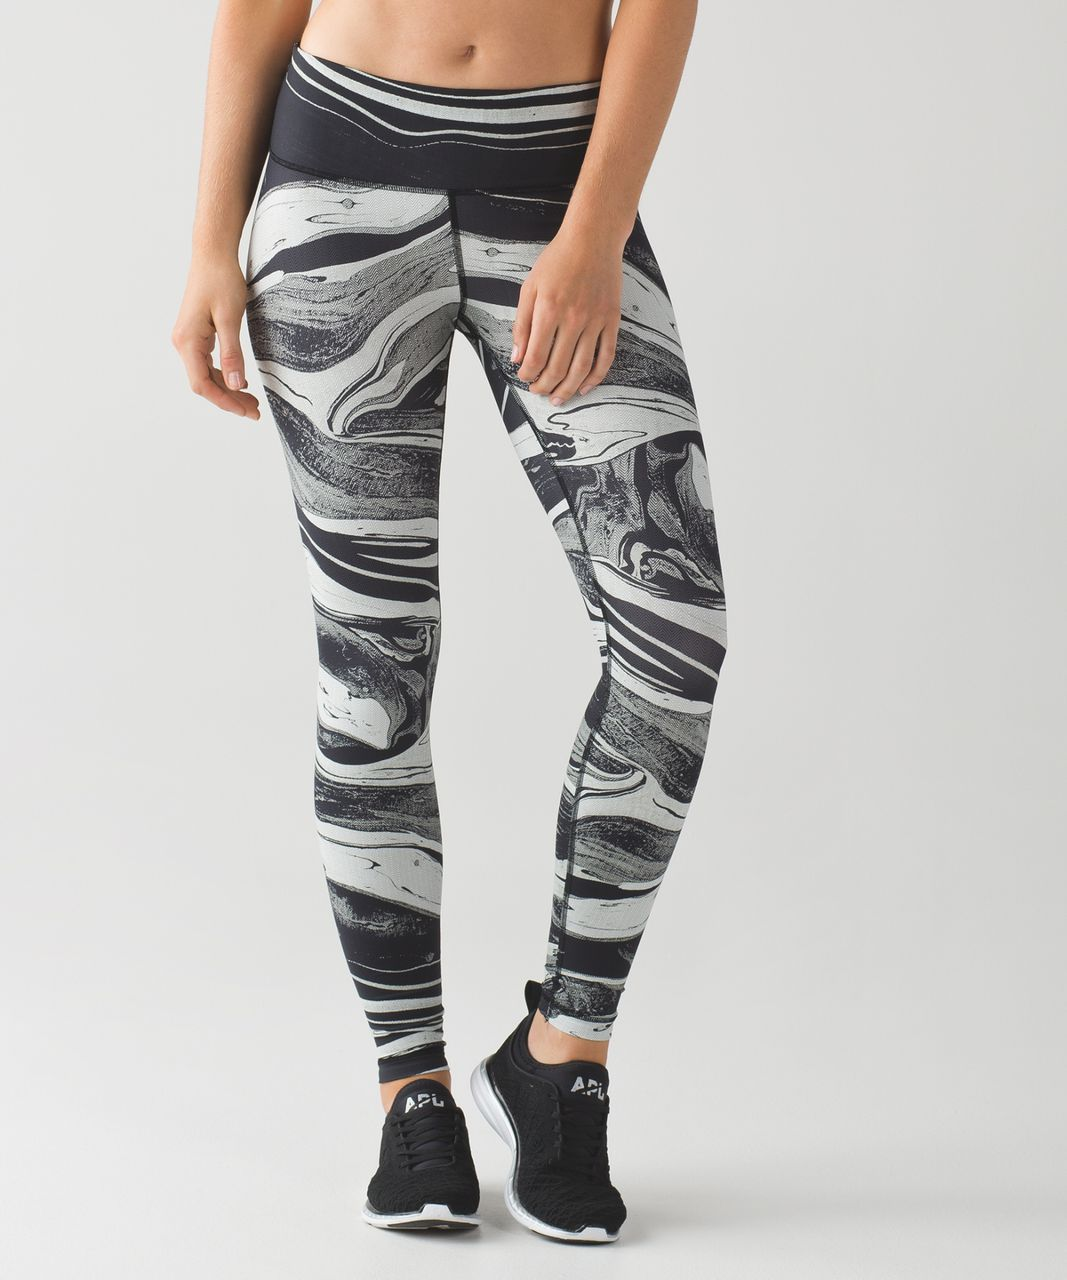 Lululemon Speed Wunder Tight (Nulux) - Marbled Mix Speed Wunder 50 G White Black